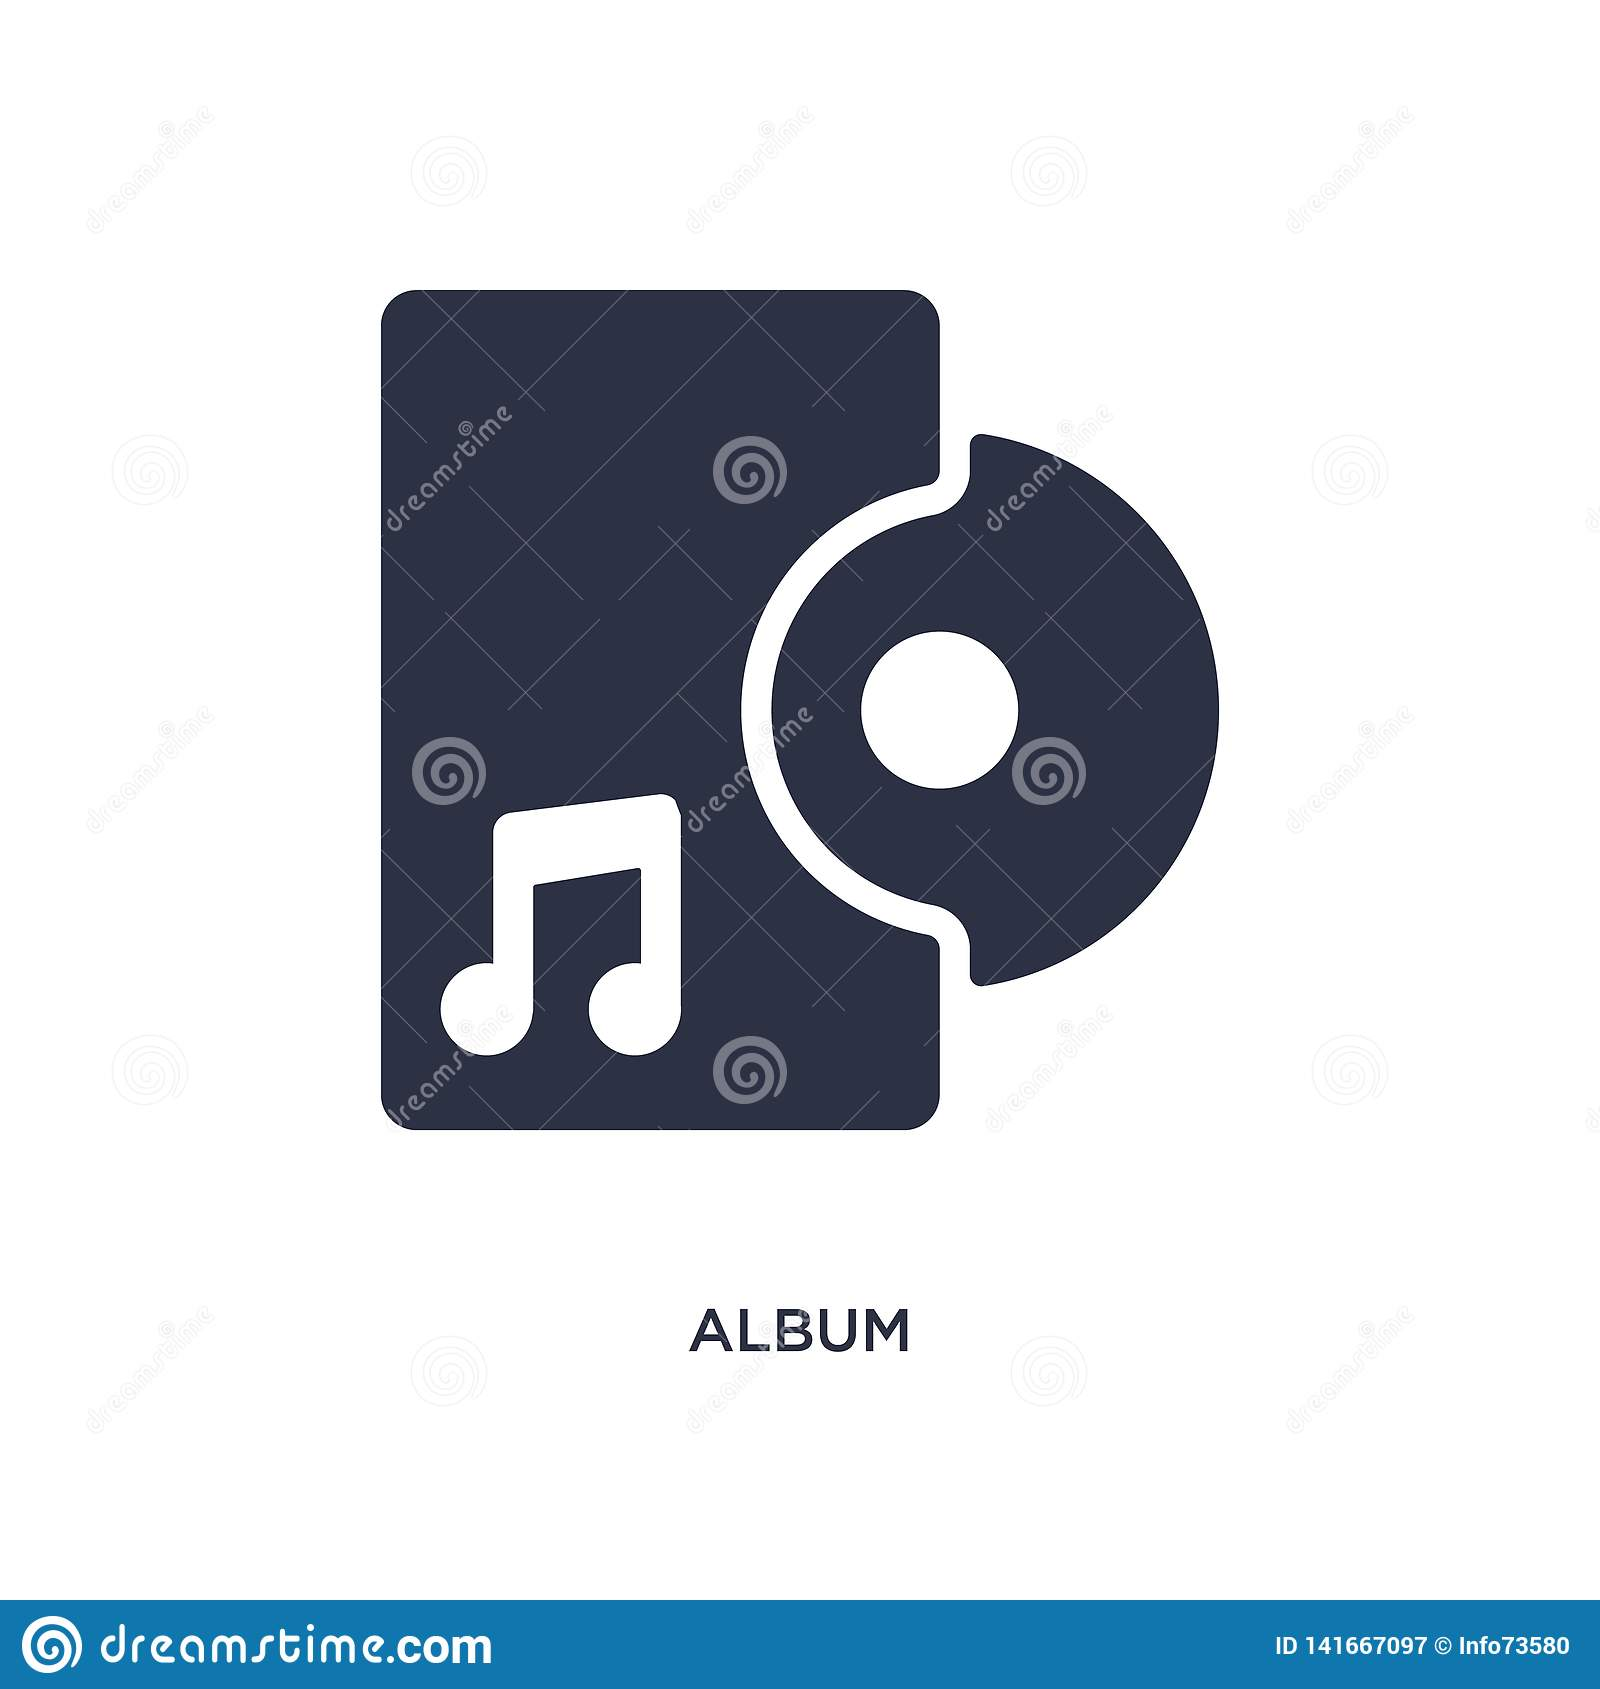 album icon on white background. Simple element illustration from music concept